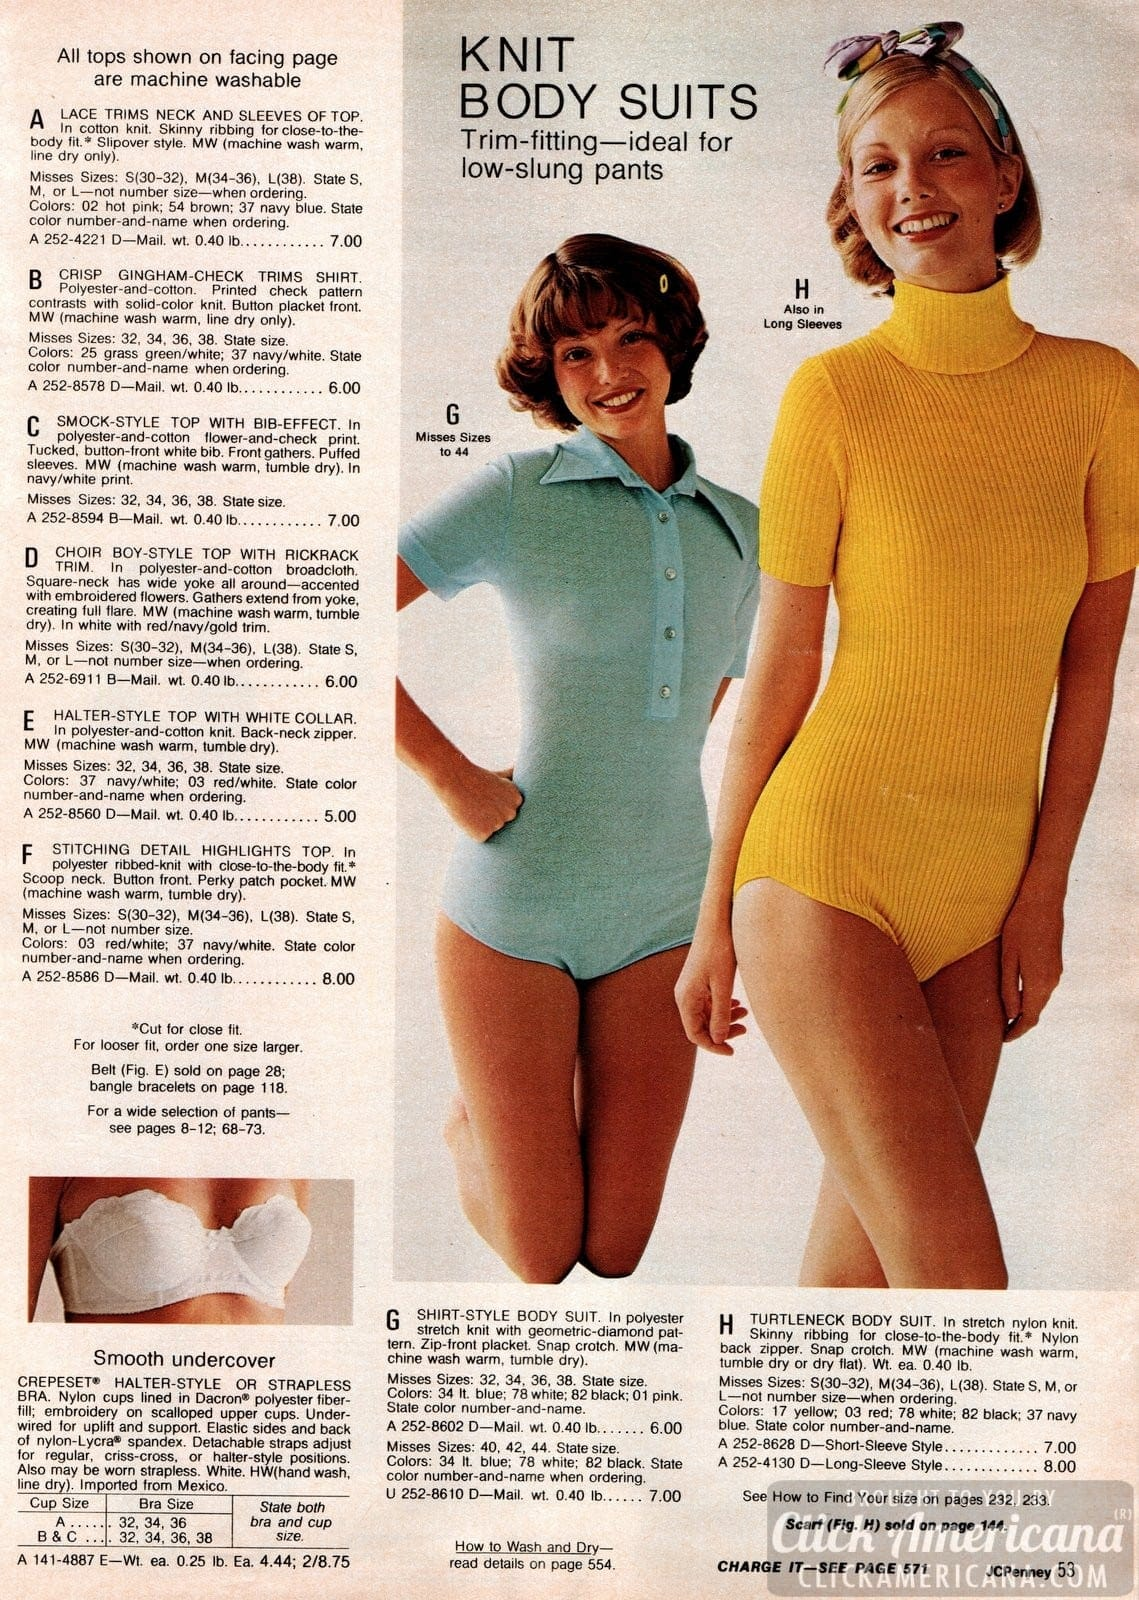 Body suits for women - Retro fashions from 1973 (1)